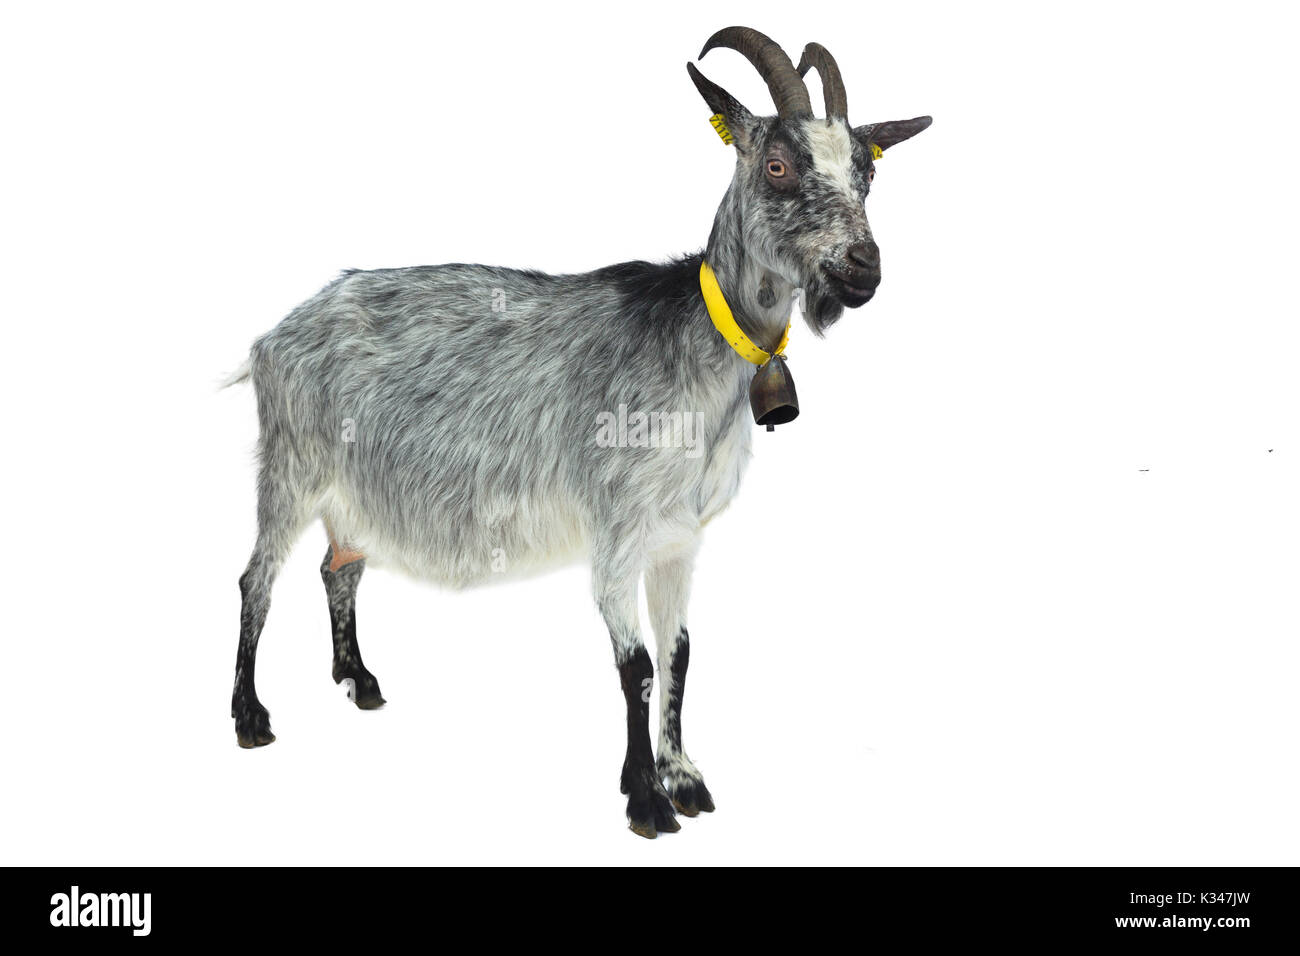 French breed, goat from France: Lorraine goat, can be outlined. - Stock Image